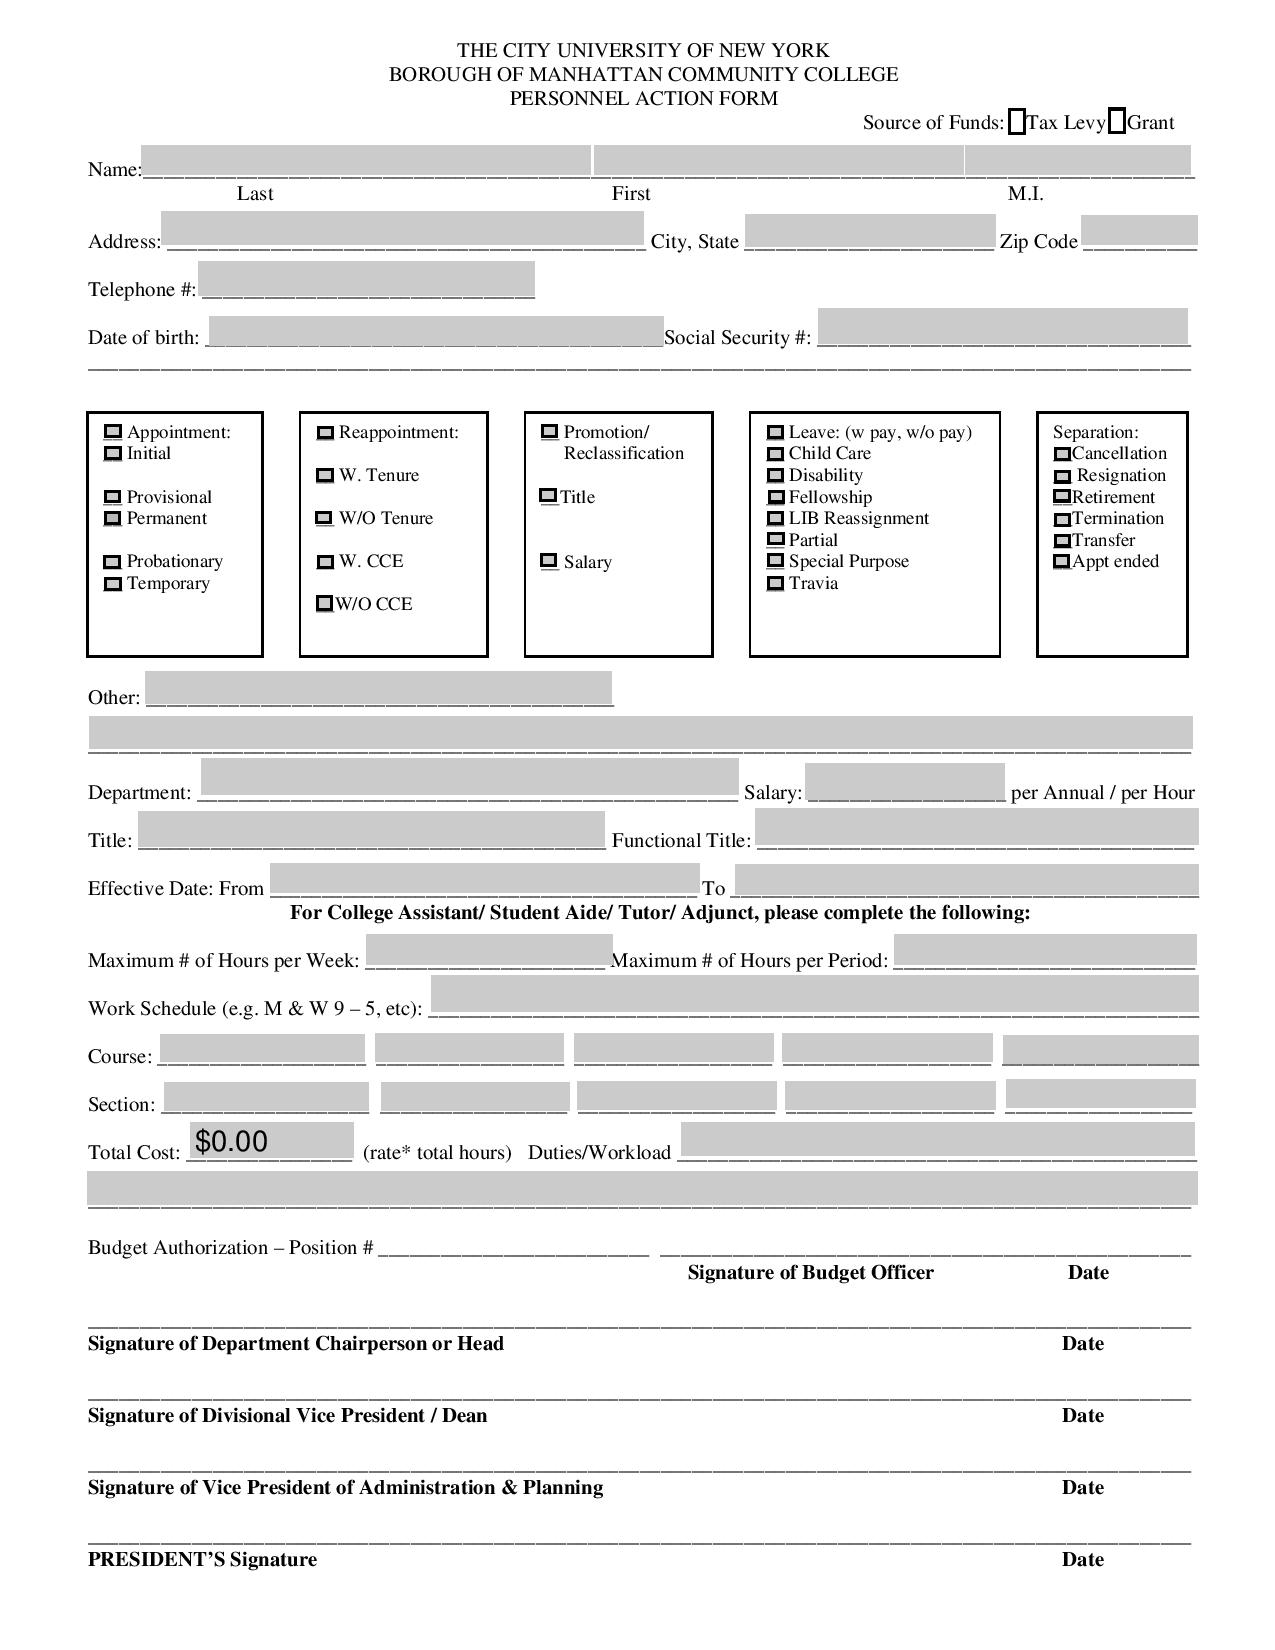 general personnel action form in pdf page 0011